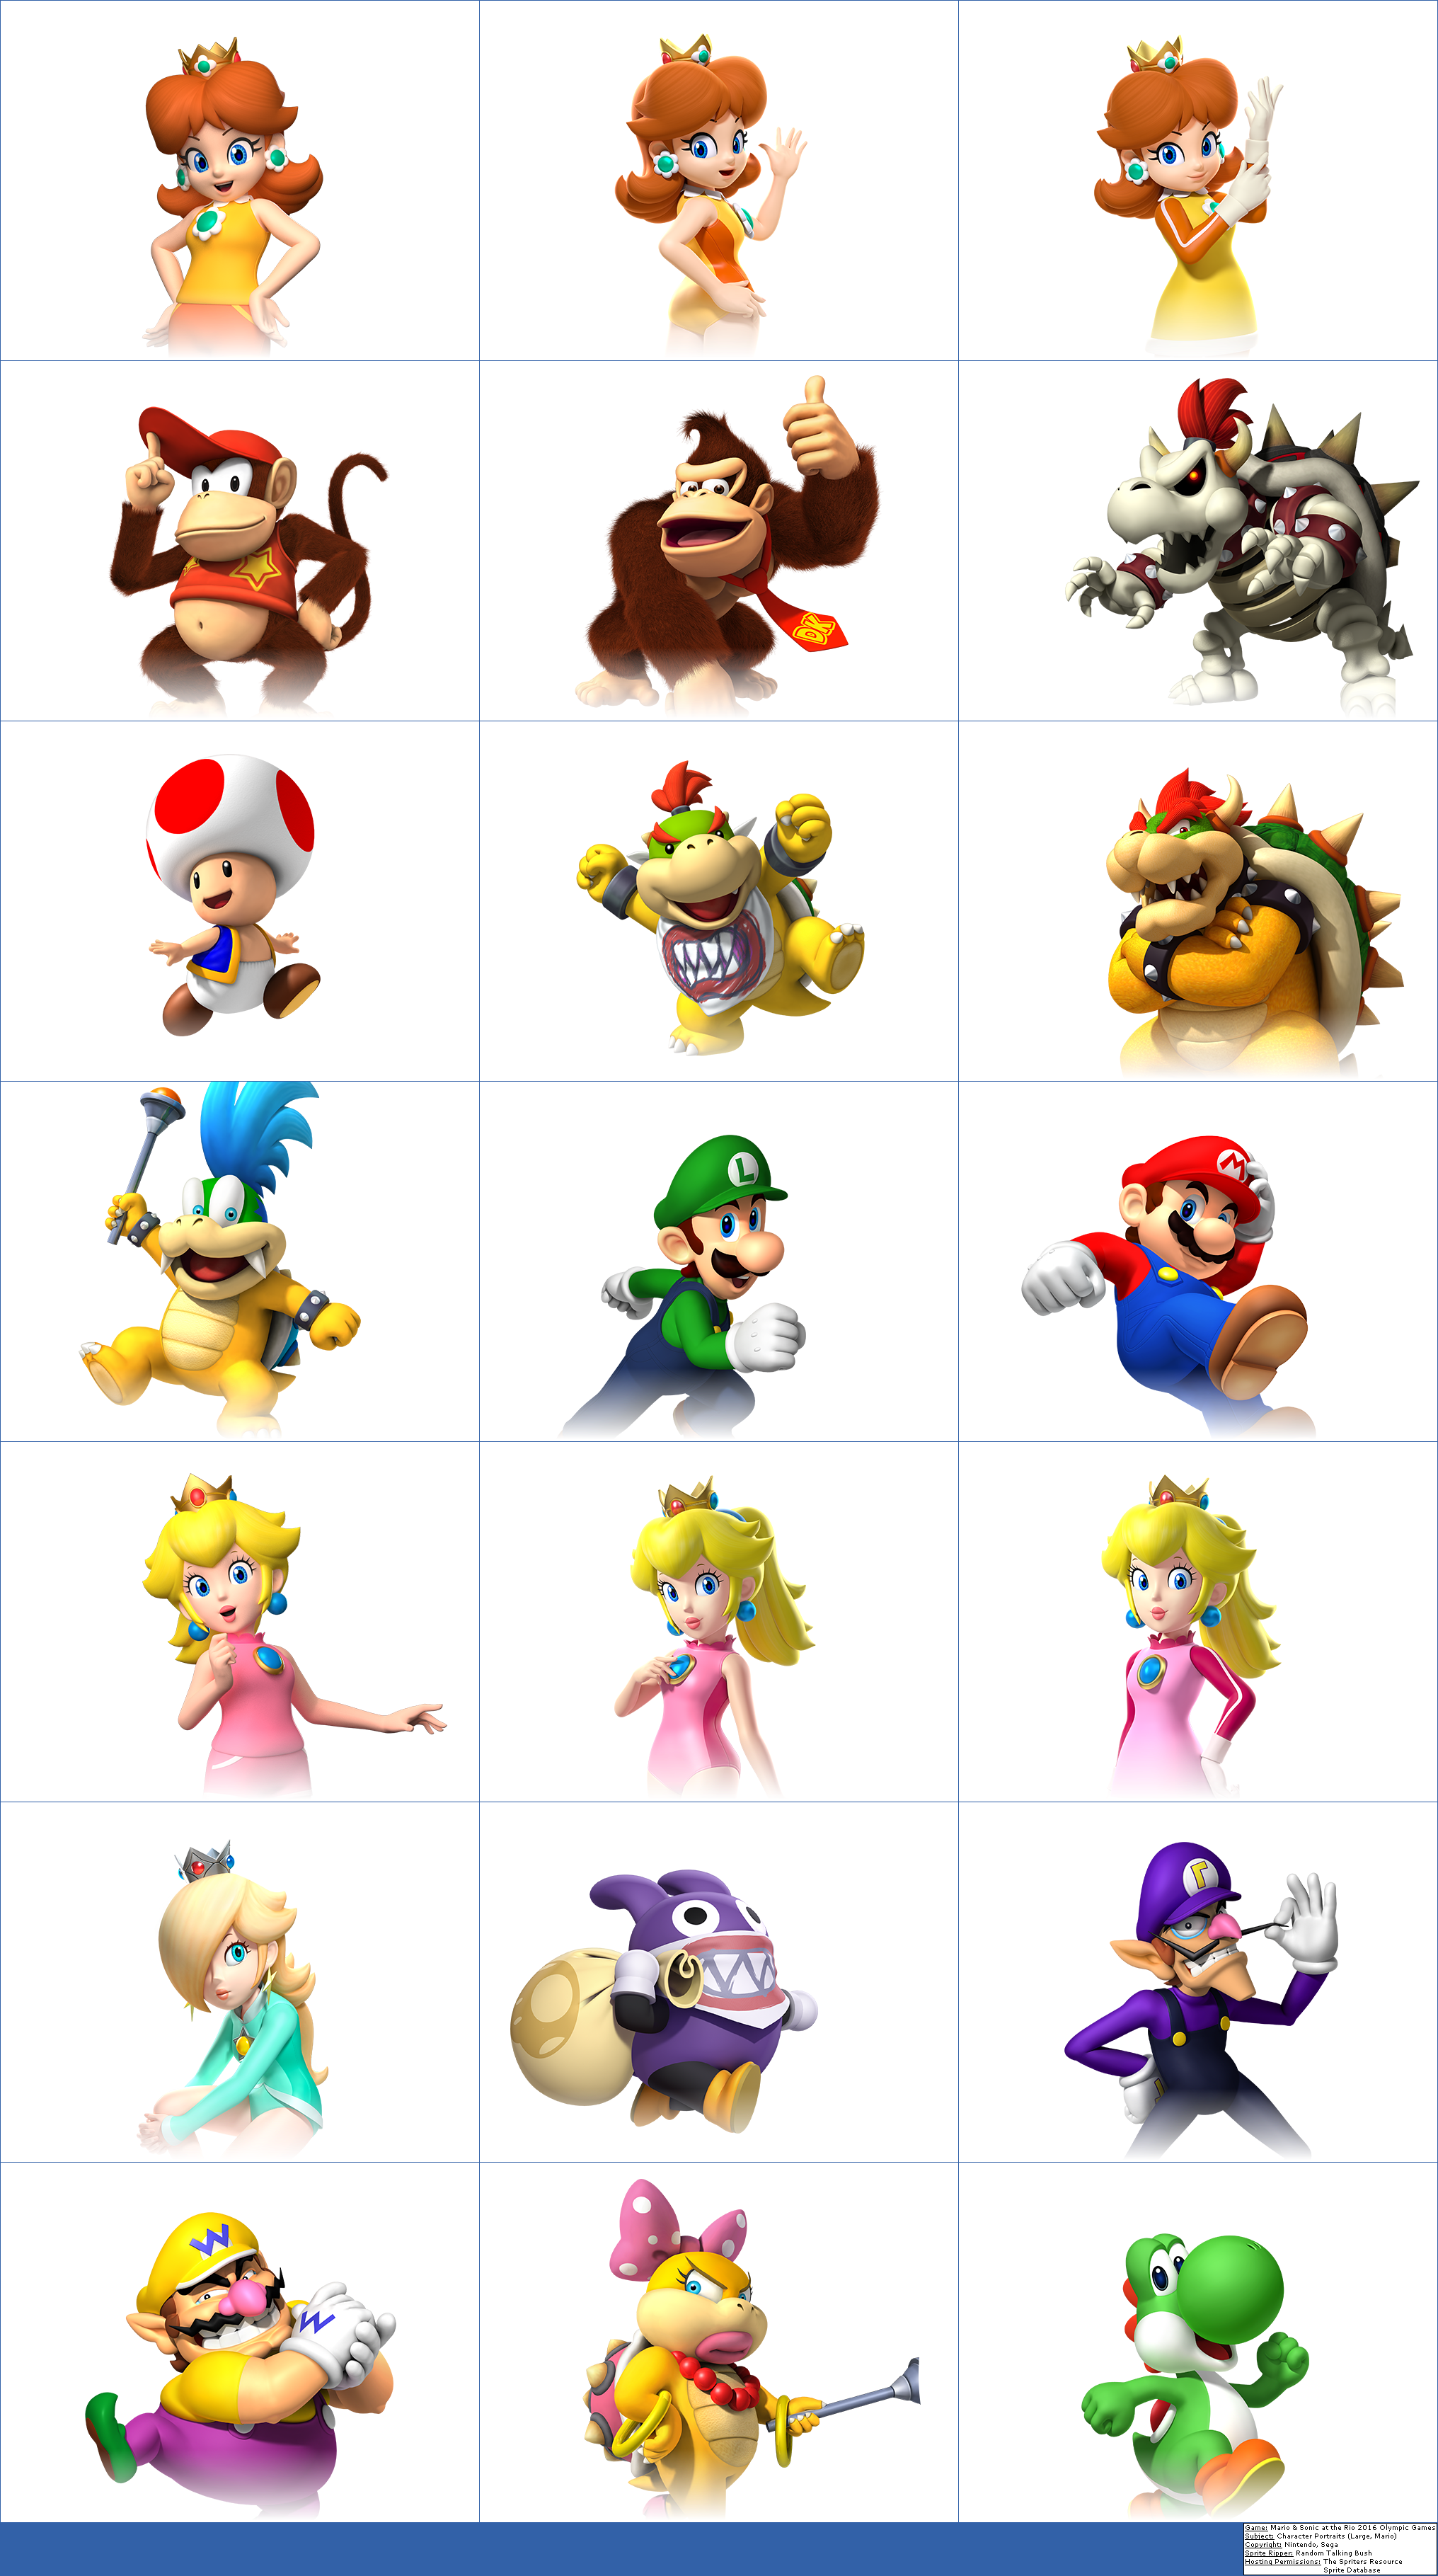 Character Portraits (Large, Mario)